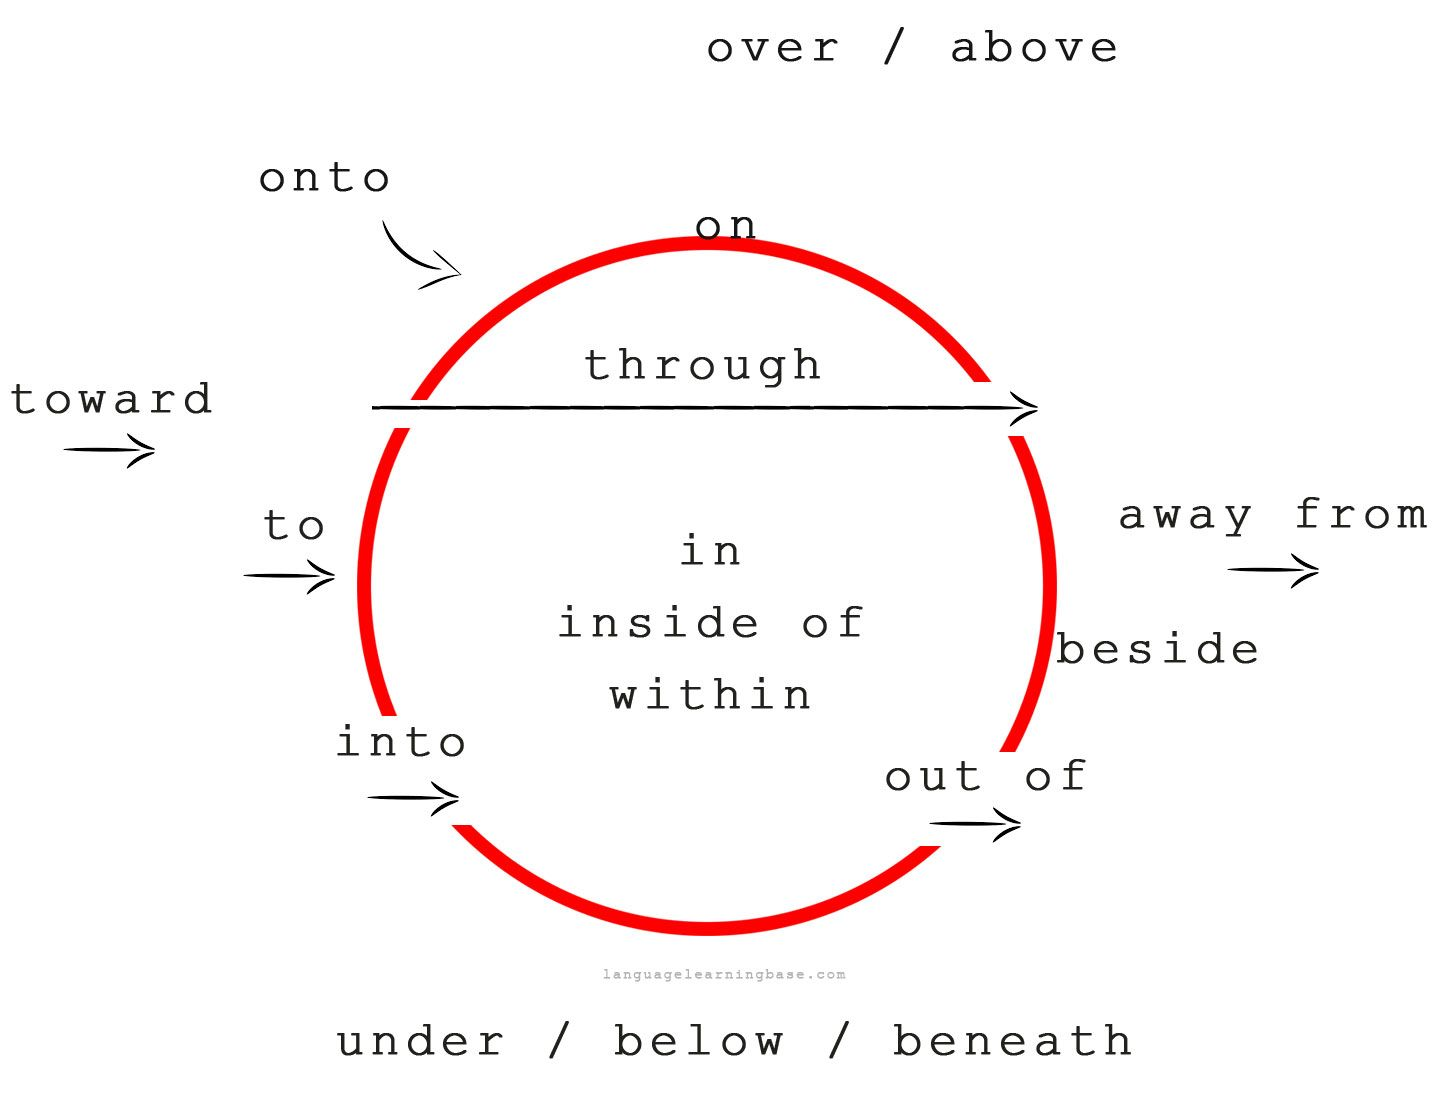 English preposition diagram wiring library prepositions of direction learn english preposition grammar rh pinterest com greek prepositions diagram english preposition diagram ccuart Images